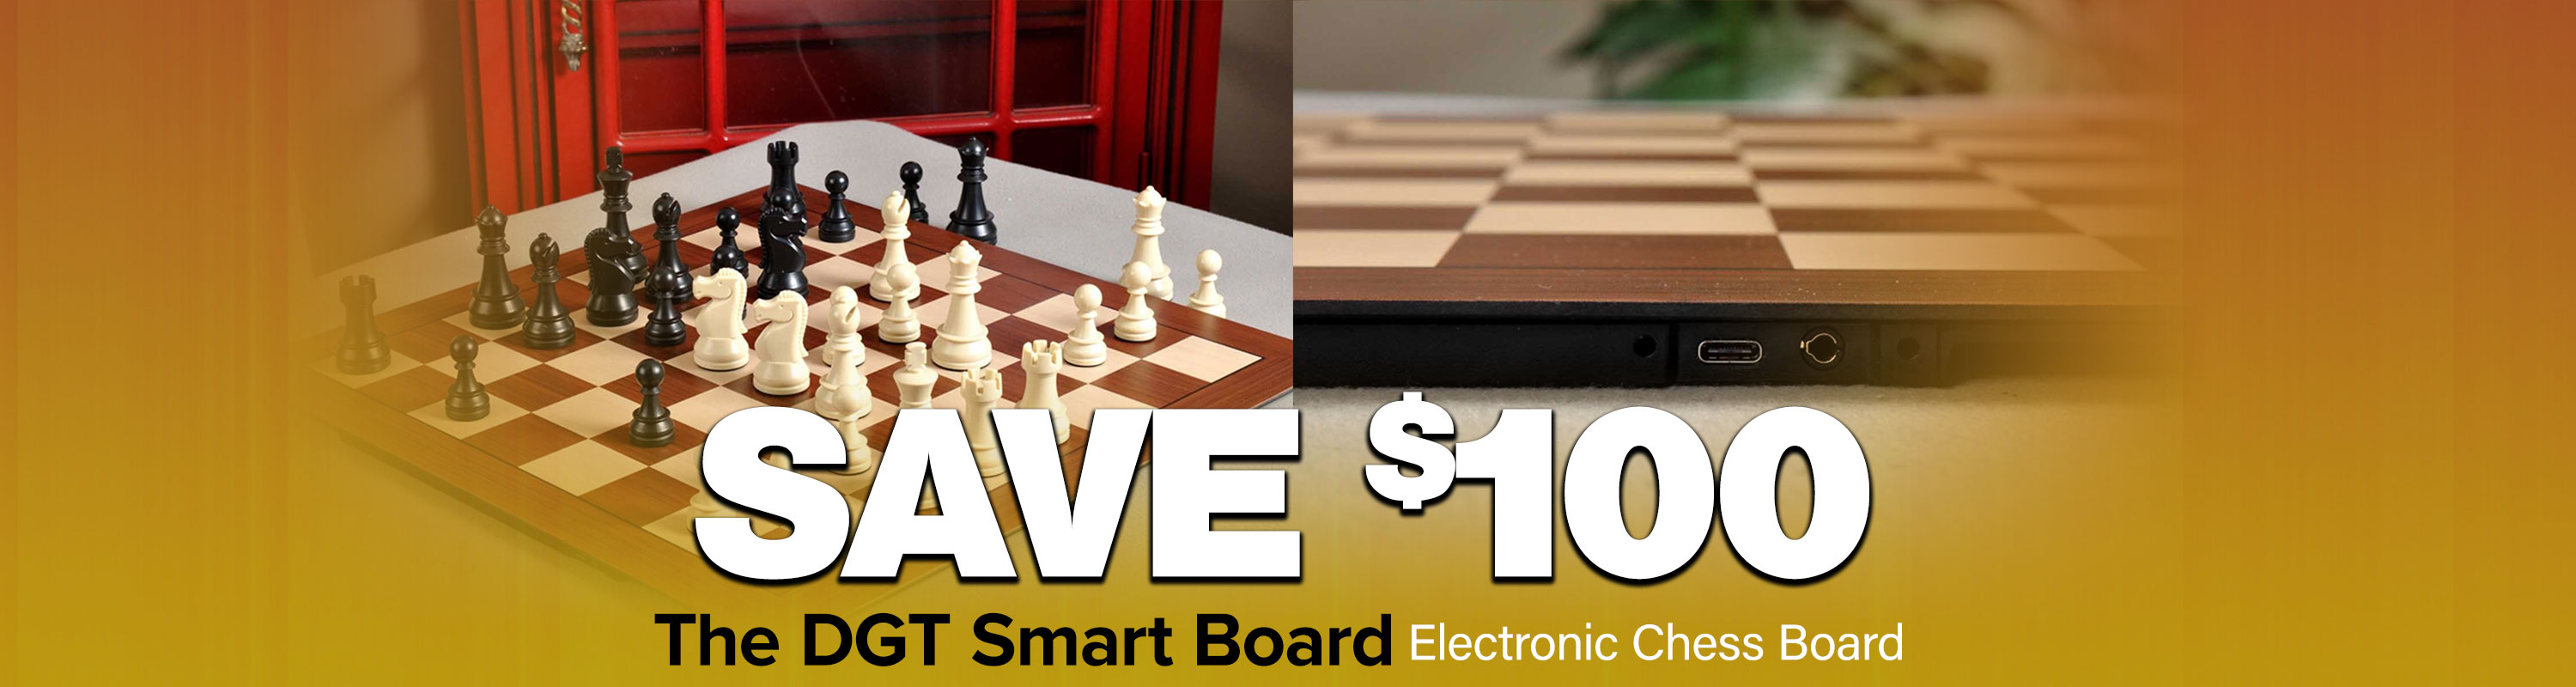 SAVE $100 - DGT Smart Board